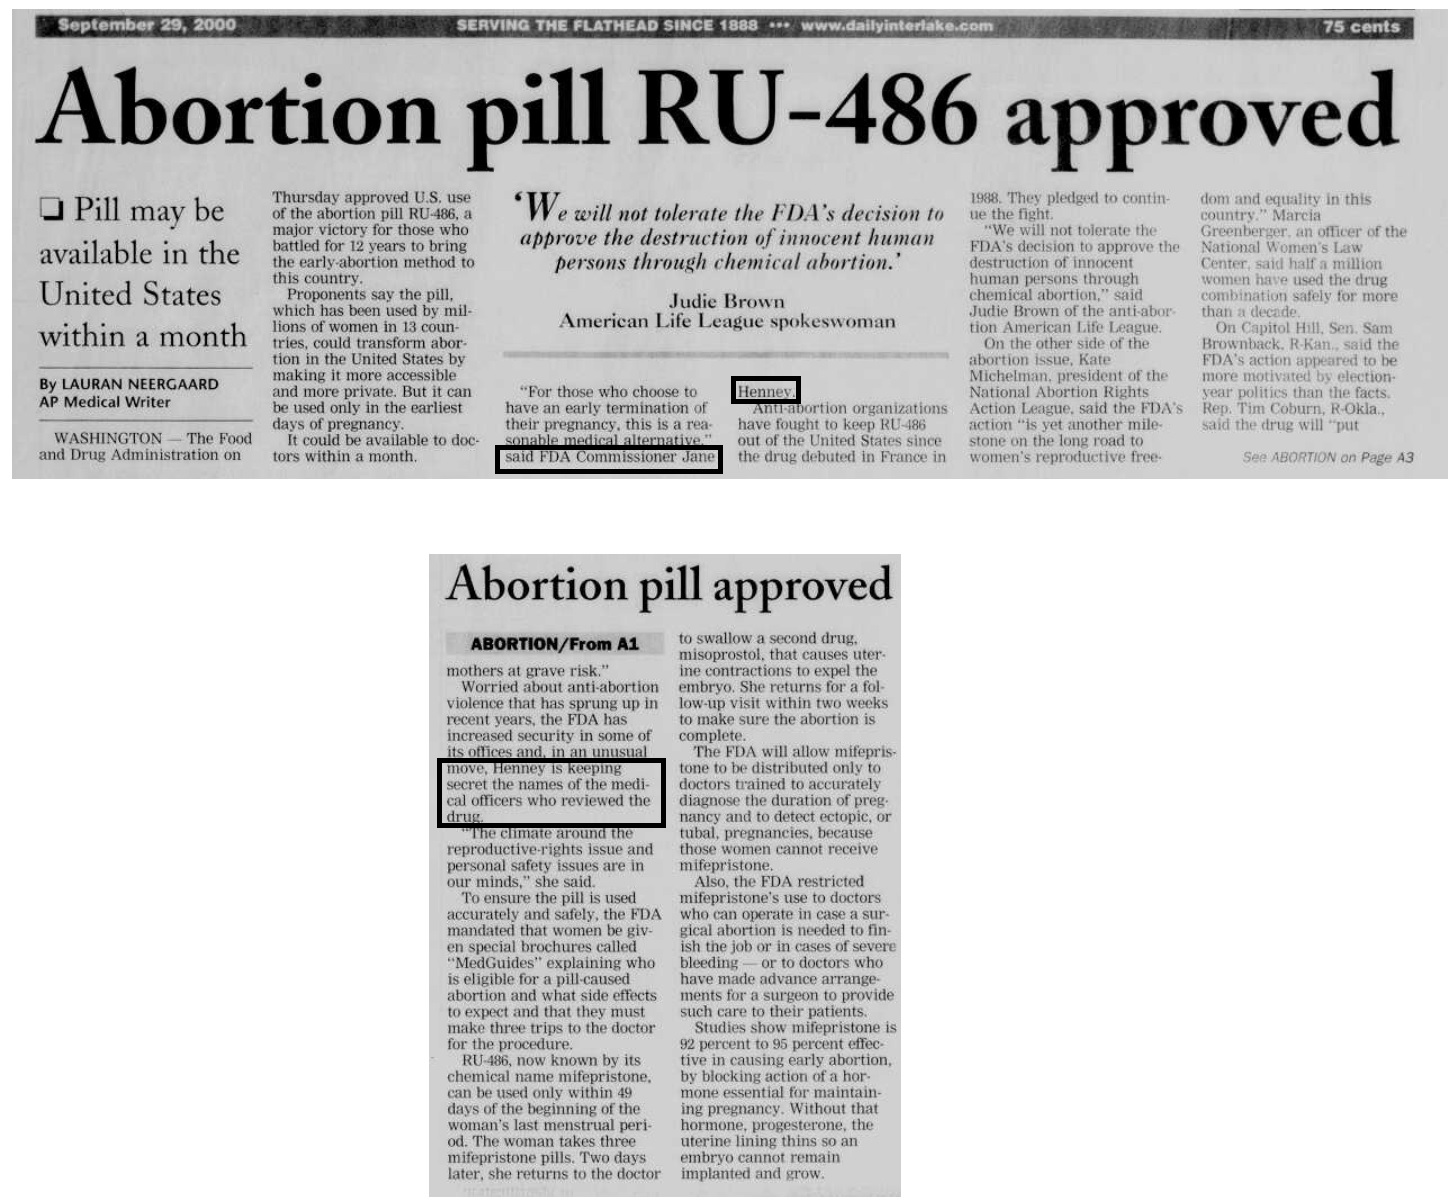 FDA keeps reviewers of abortion pill secret